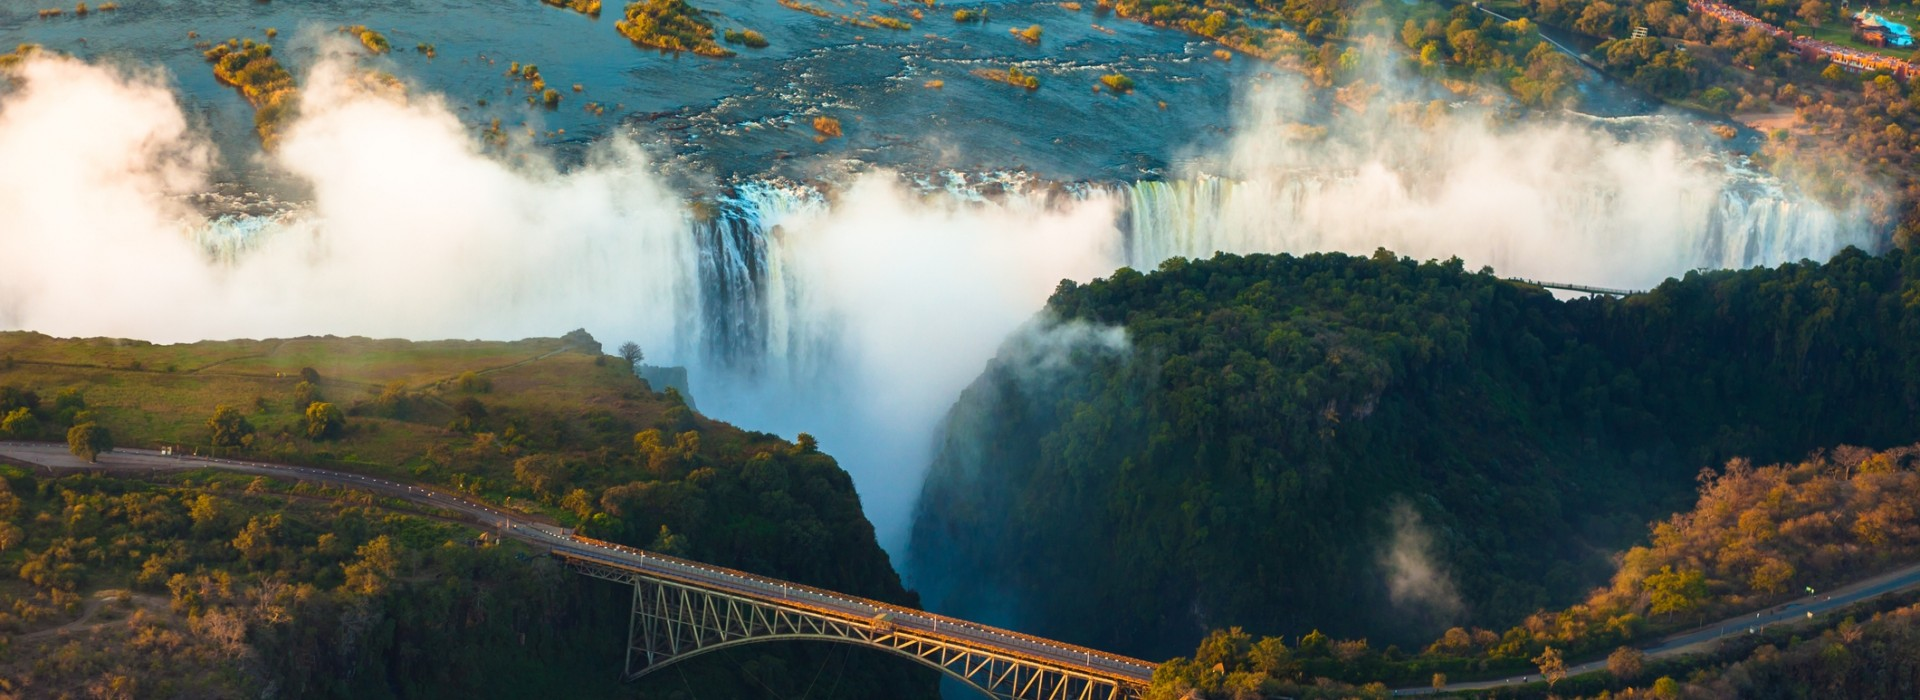 Travelling Zambia - Tours and Trips in Zambia